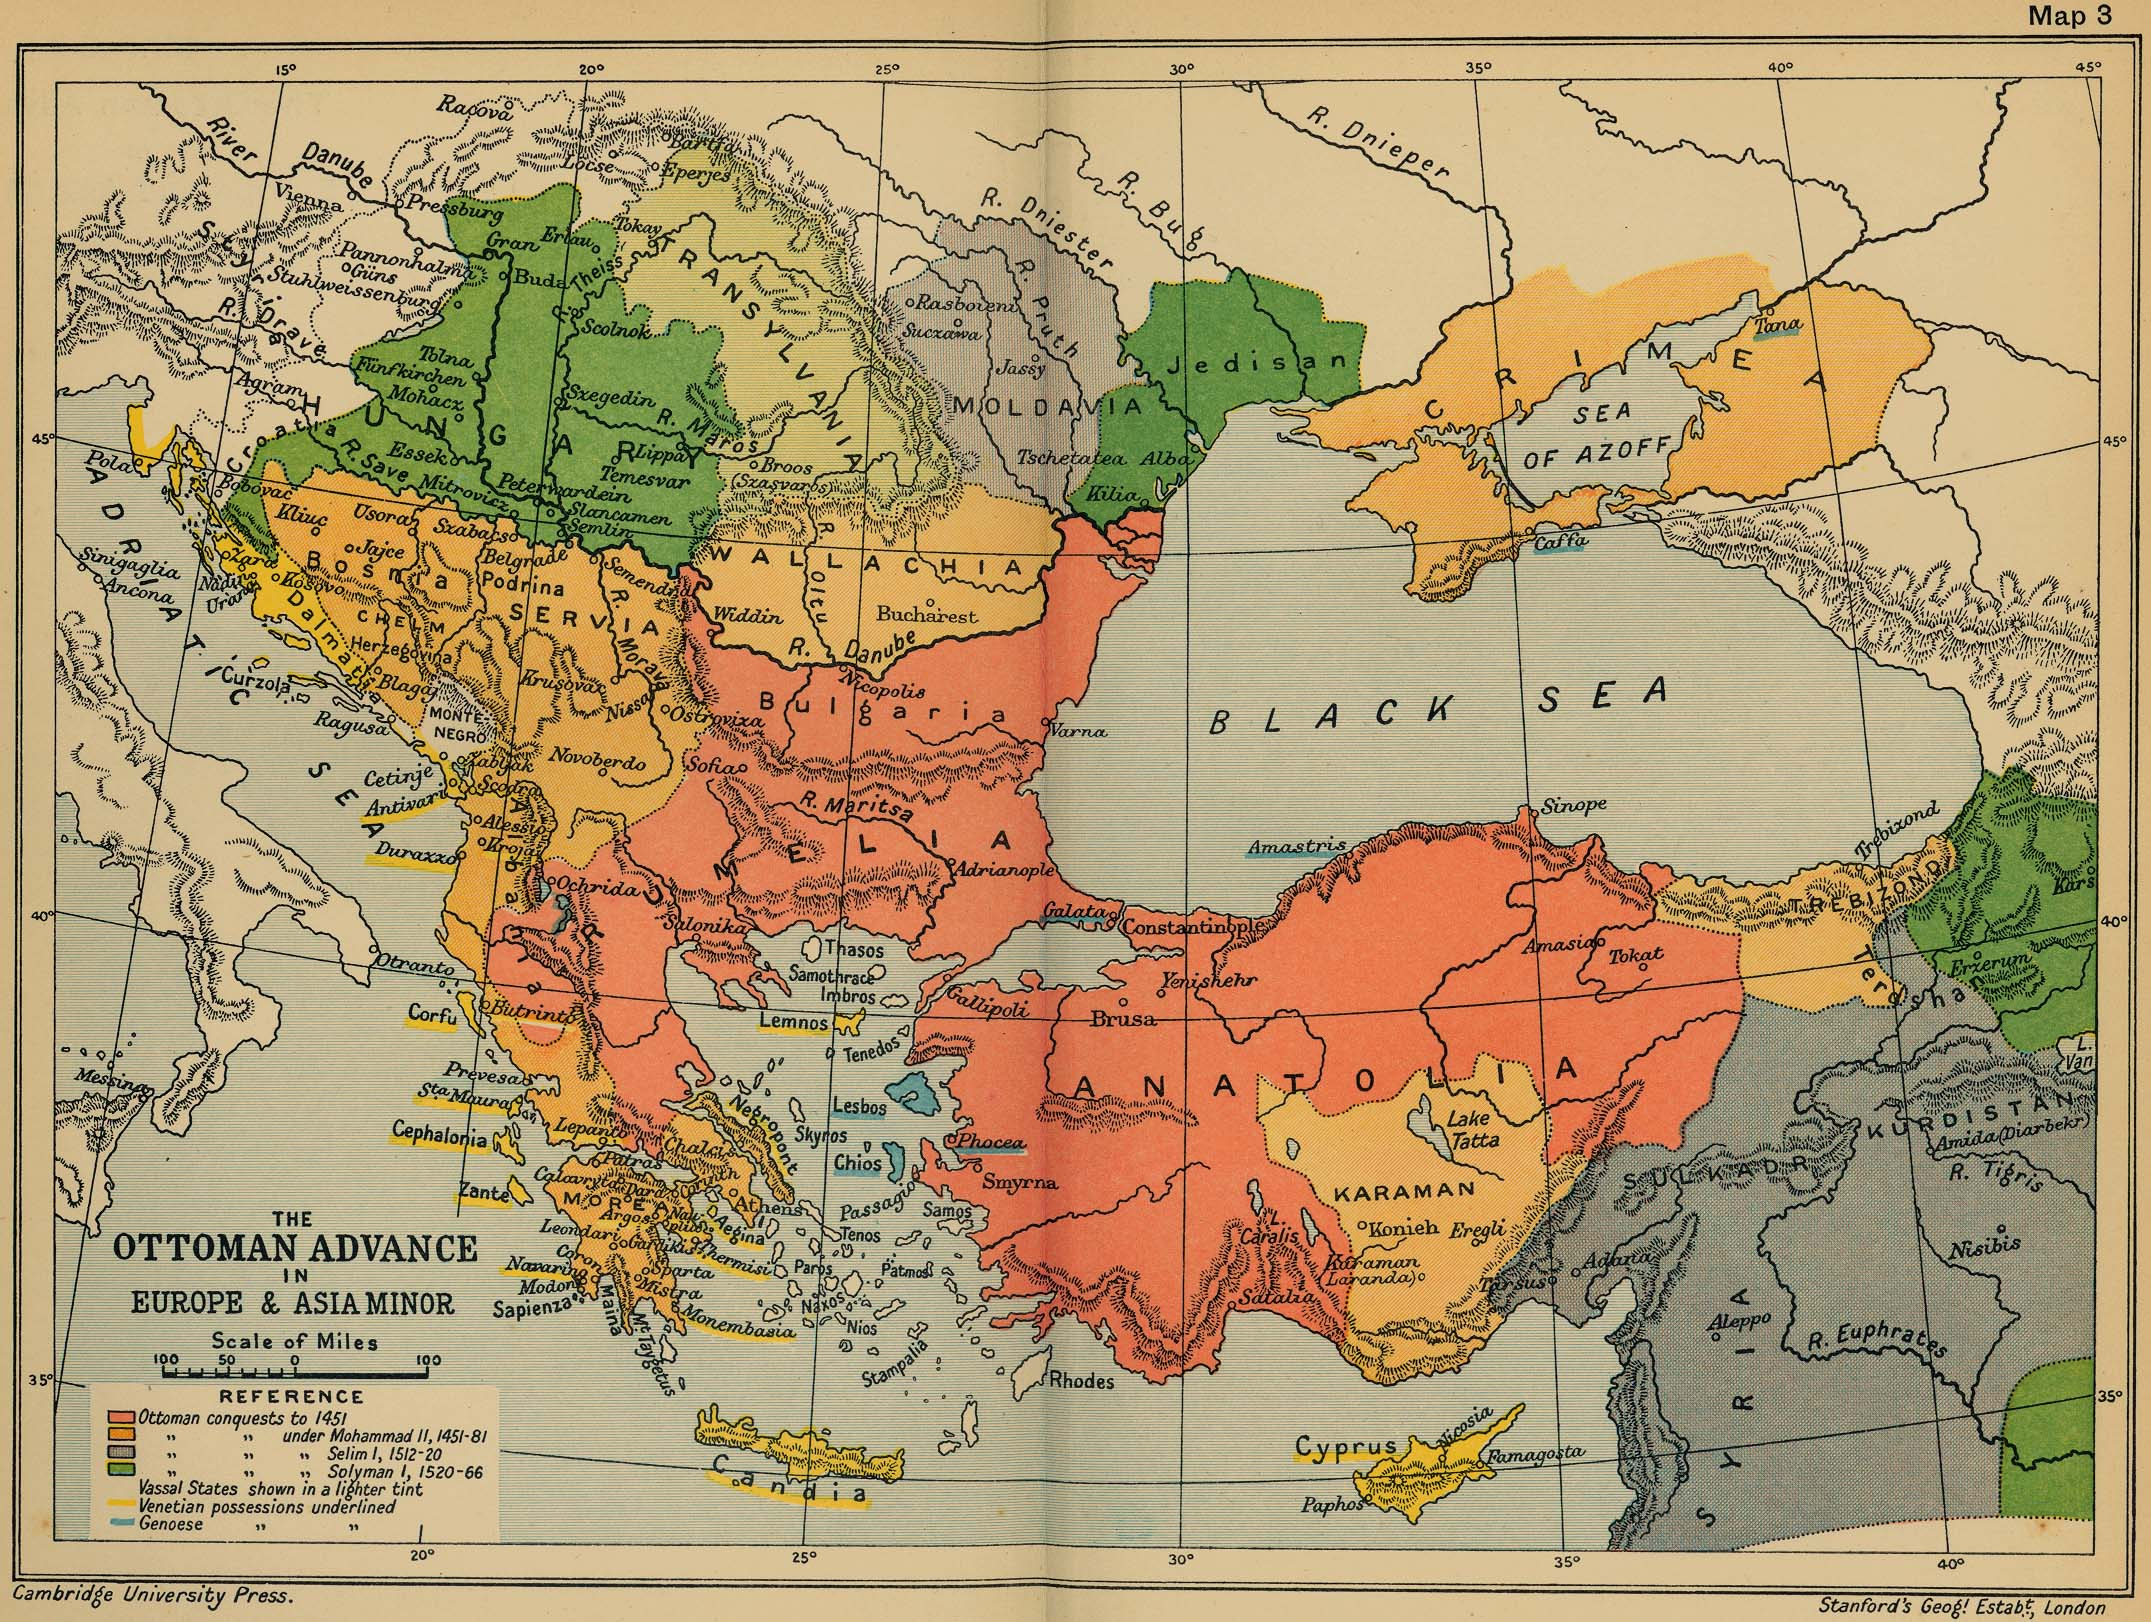 The ottoman advance of europe and asia minor map europe mappery gumiabroncs Choice Image